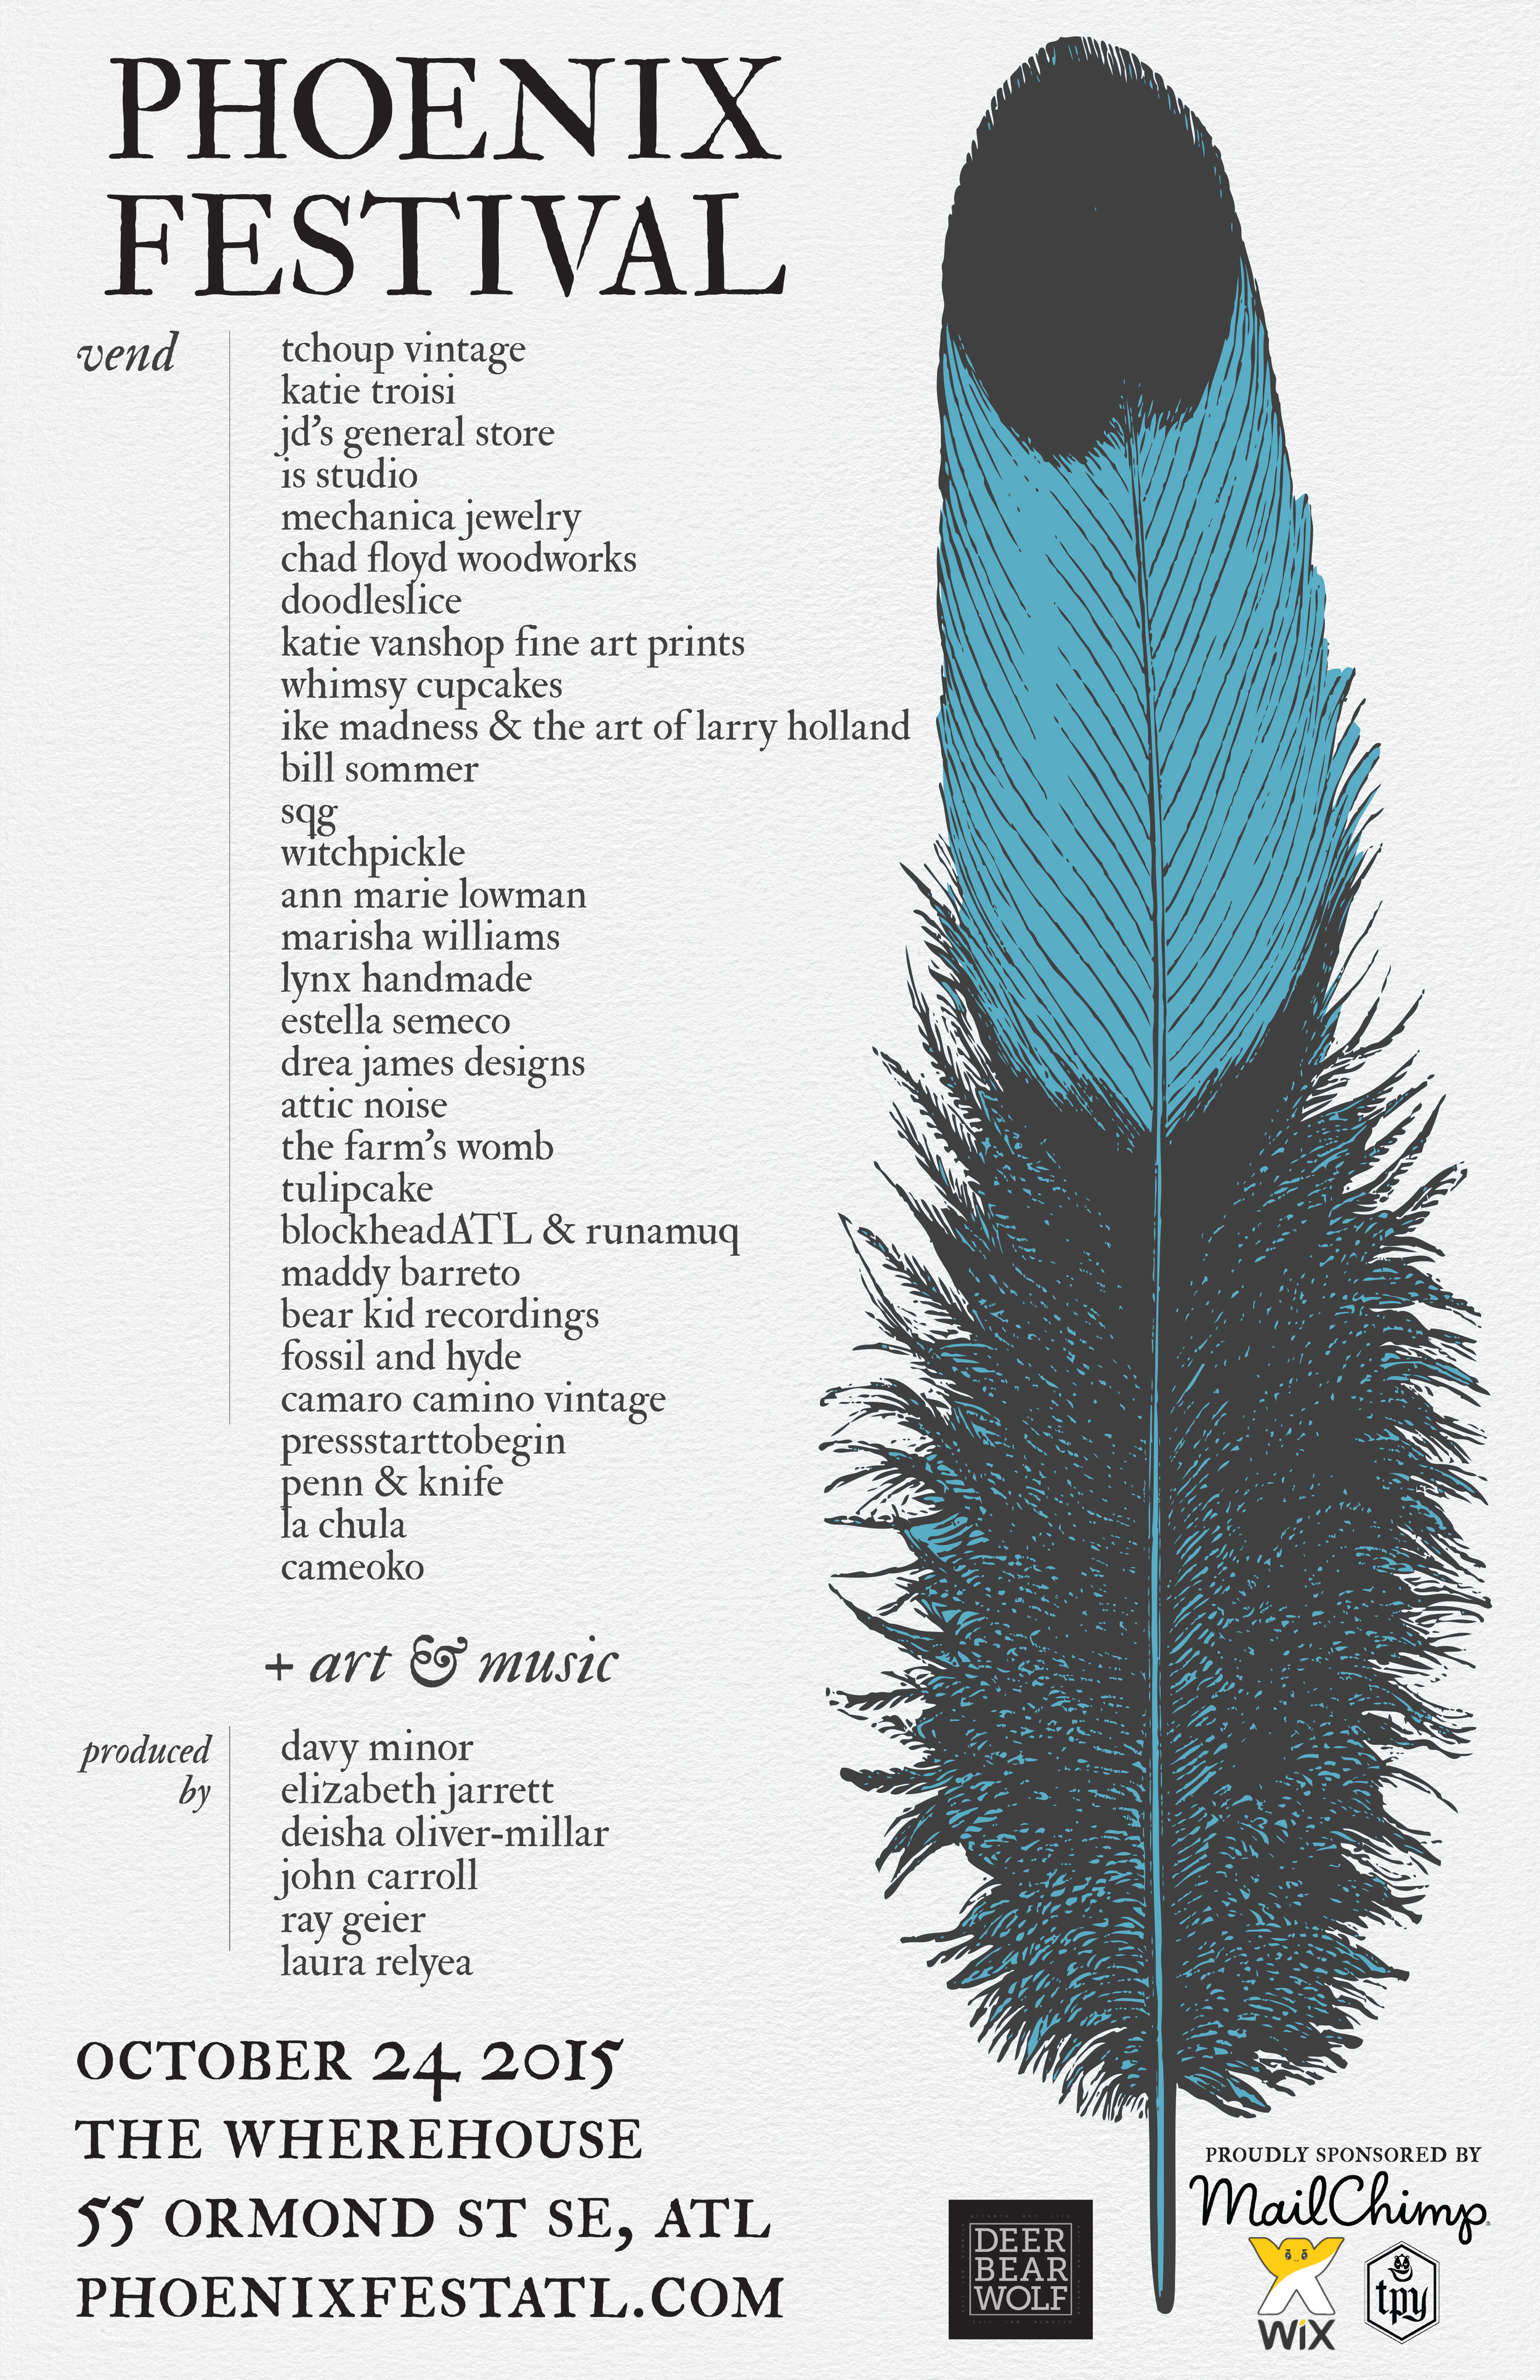 This Saturday, Deer Bear Wolf presents Phoenix Festival 2015, a day of art, music, and literature at the Wherehouse.